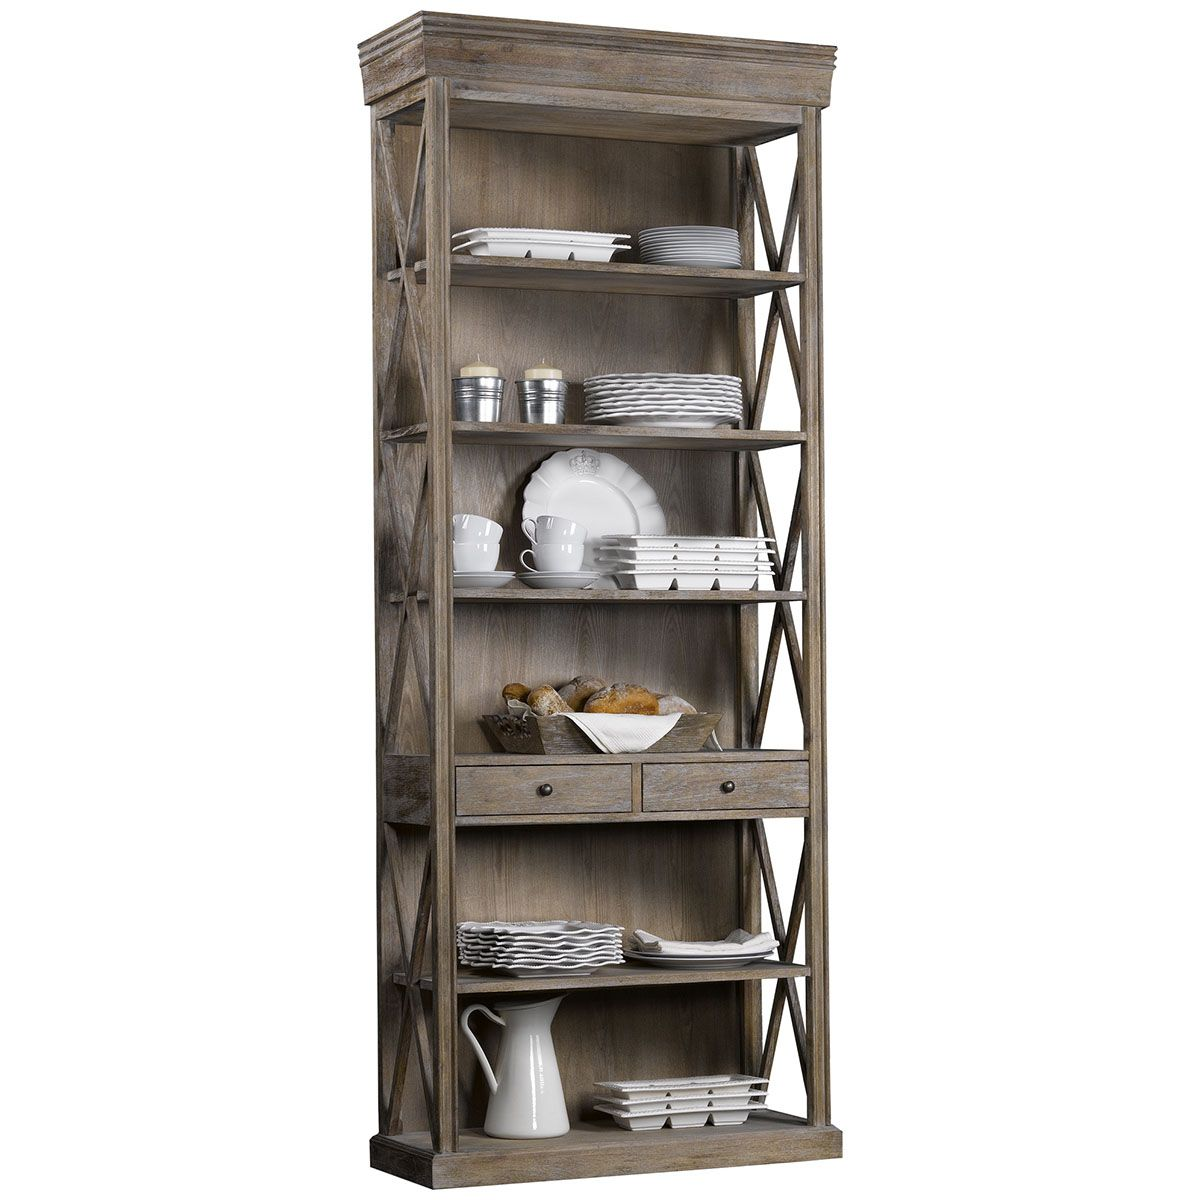 Curations Limited French Casement Bookcase 8810.0001